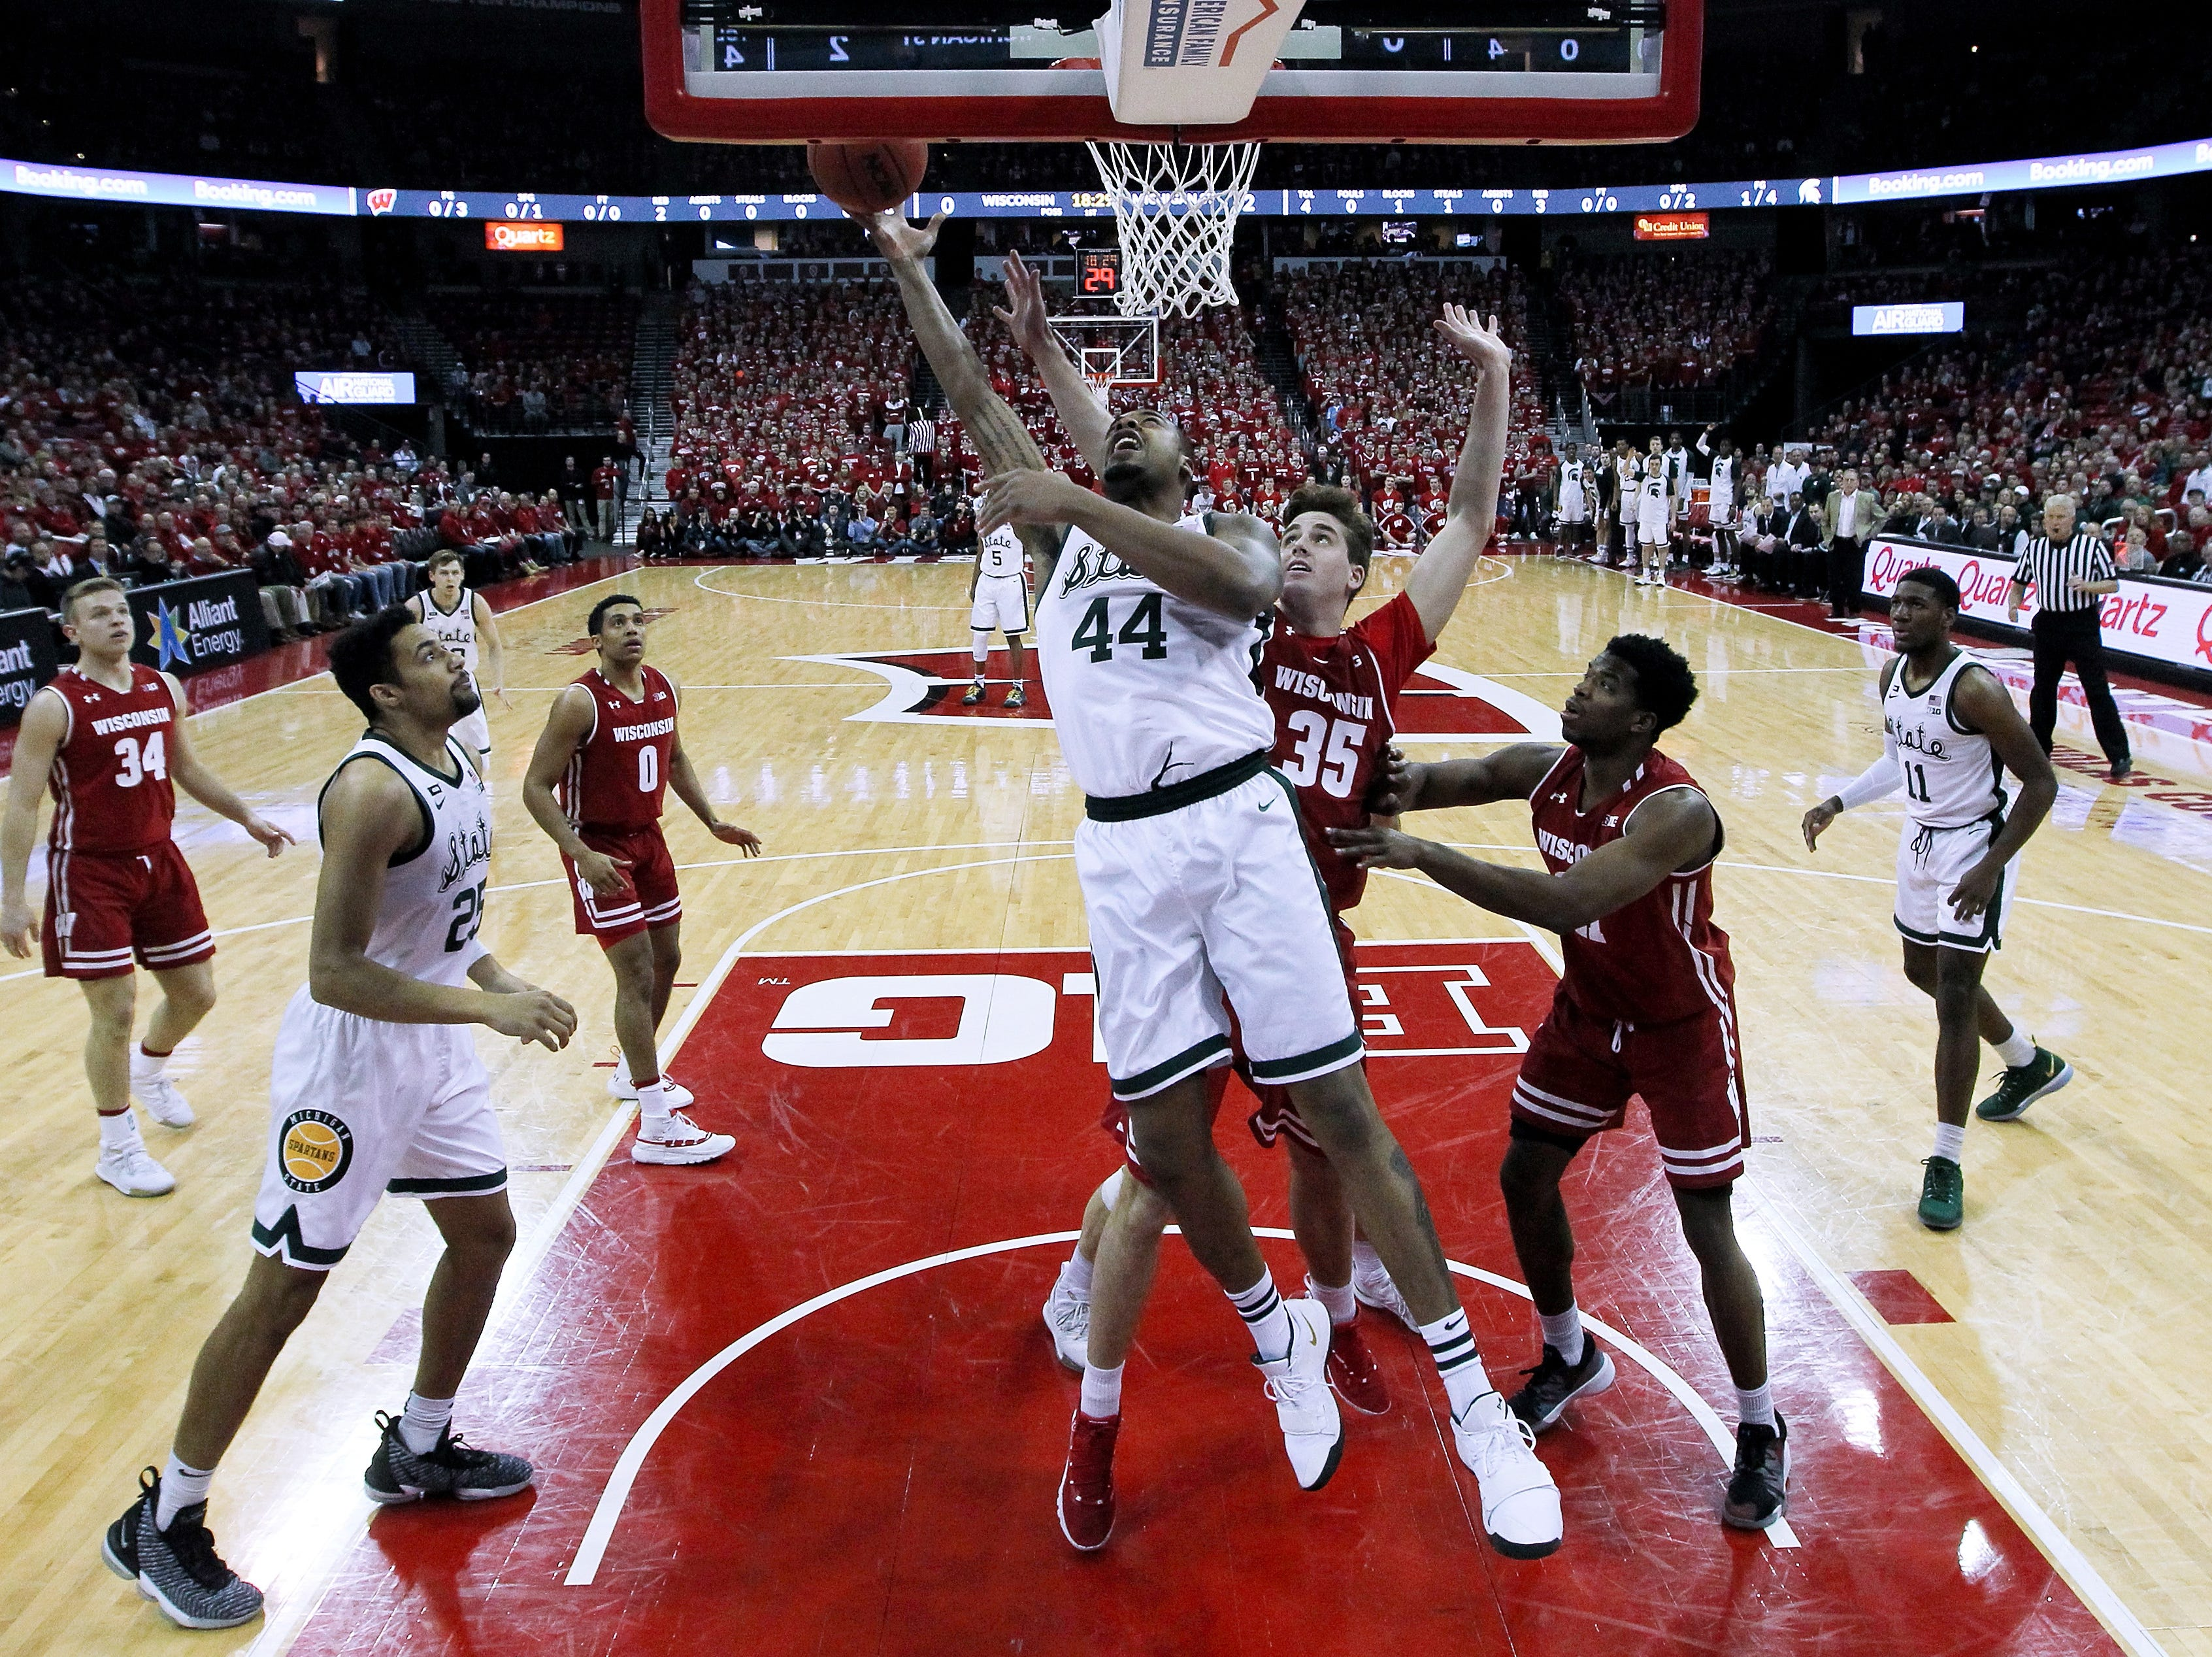 Nick Ward #44 of the Michigan State Spartans attempts a shot while being guarded by Nate Reuvers #35 of the Wisconsin Badgers in the first half at the Kohl Center on February 12, 2019 in Madison, Wisconsin.